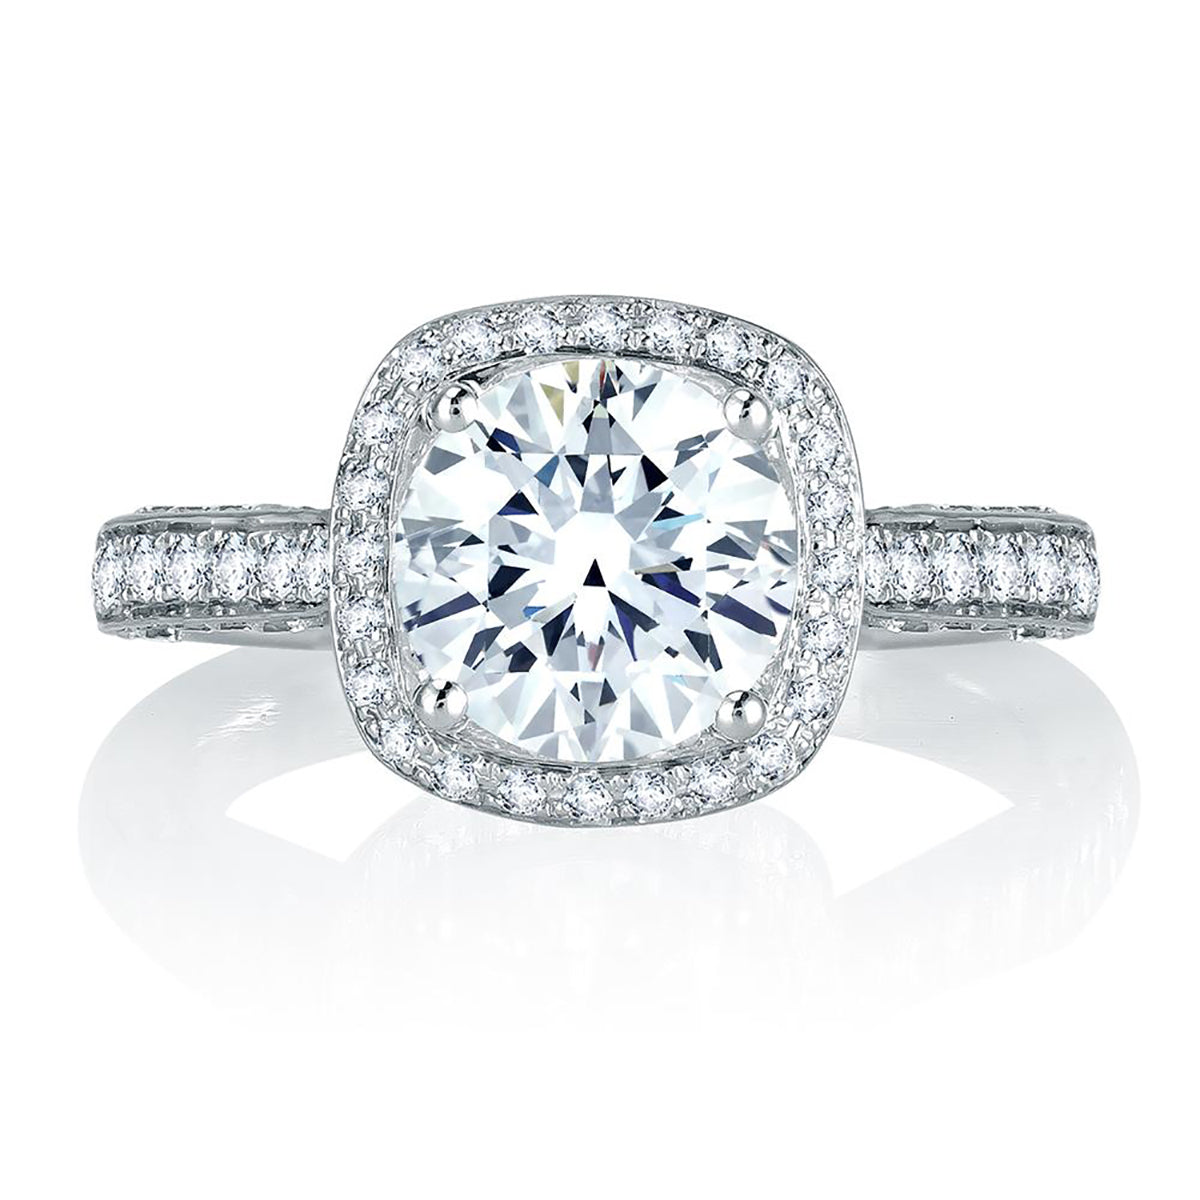 A.Jaffe Sophisticated Halo Diamond Engagement Ring MES761/212